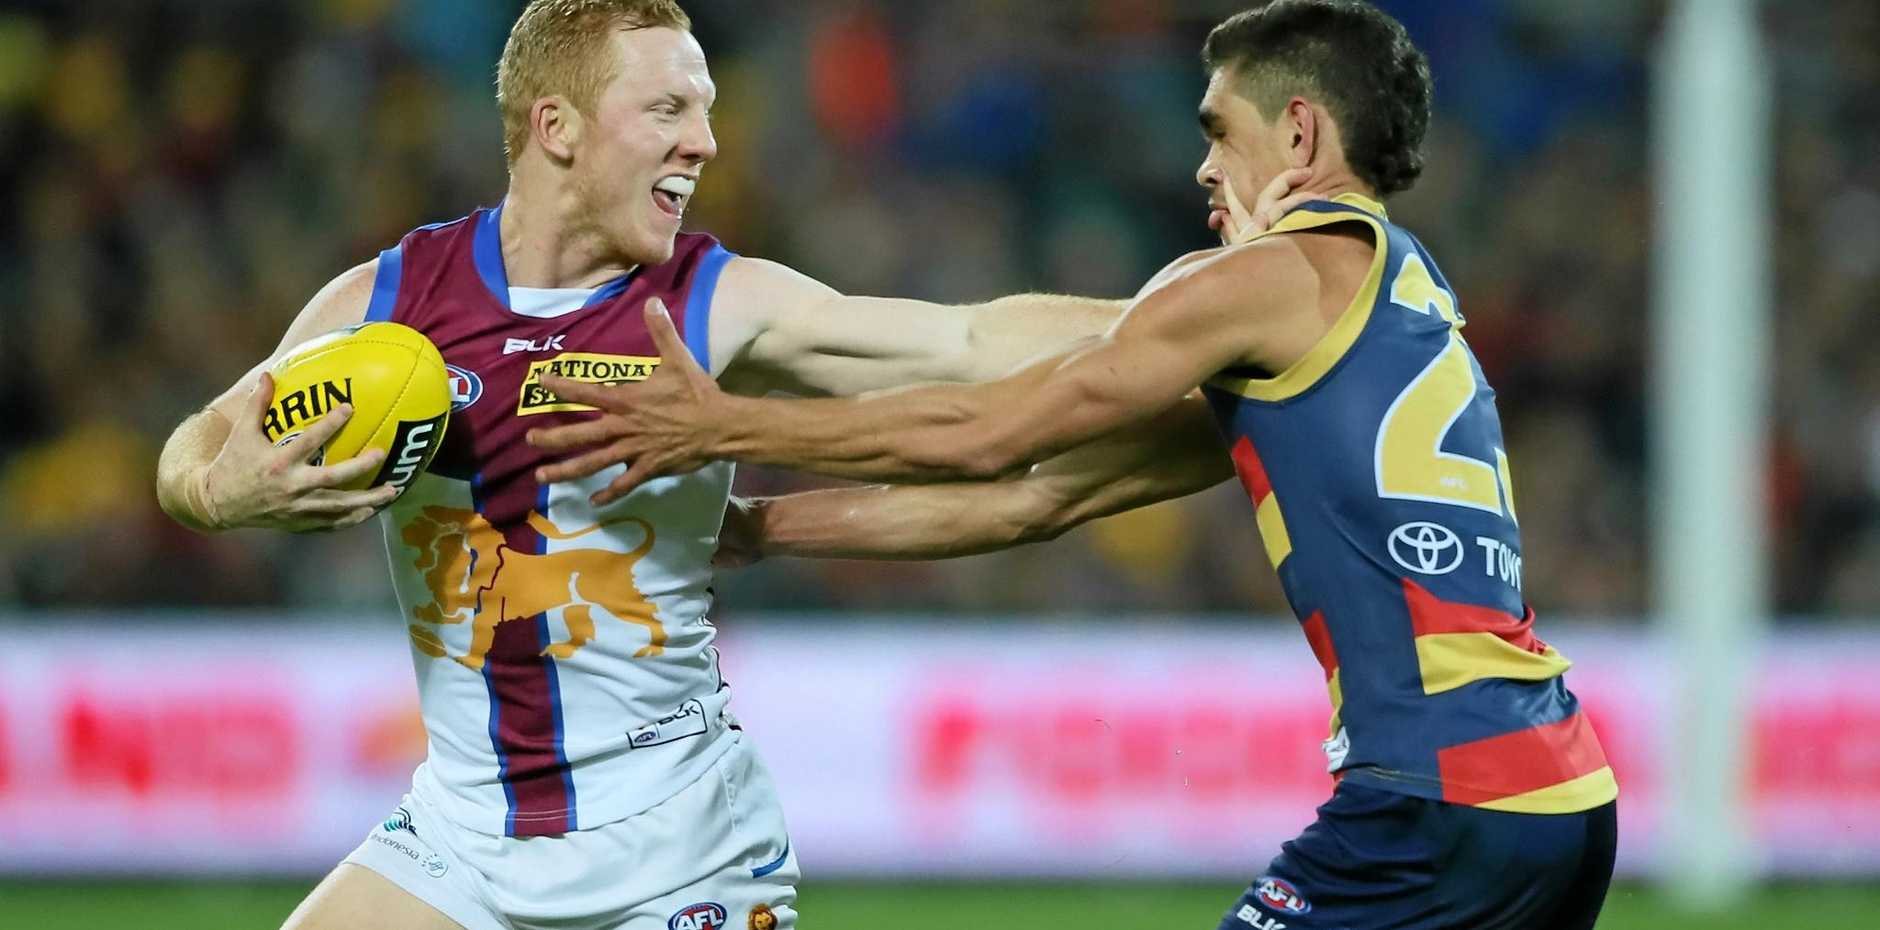 Josh Green of the Lions palms away attack from Charlie Cameron of the Crows.